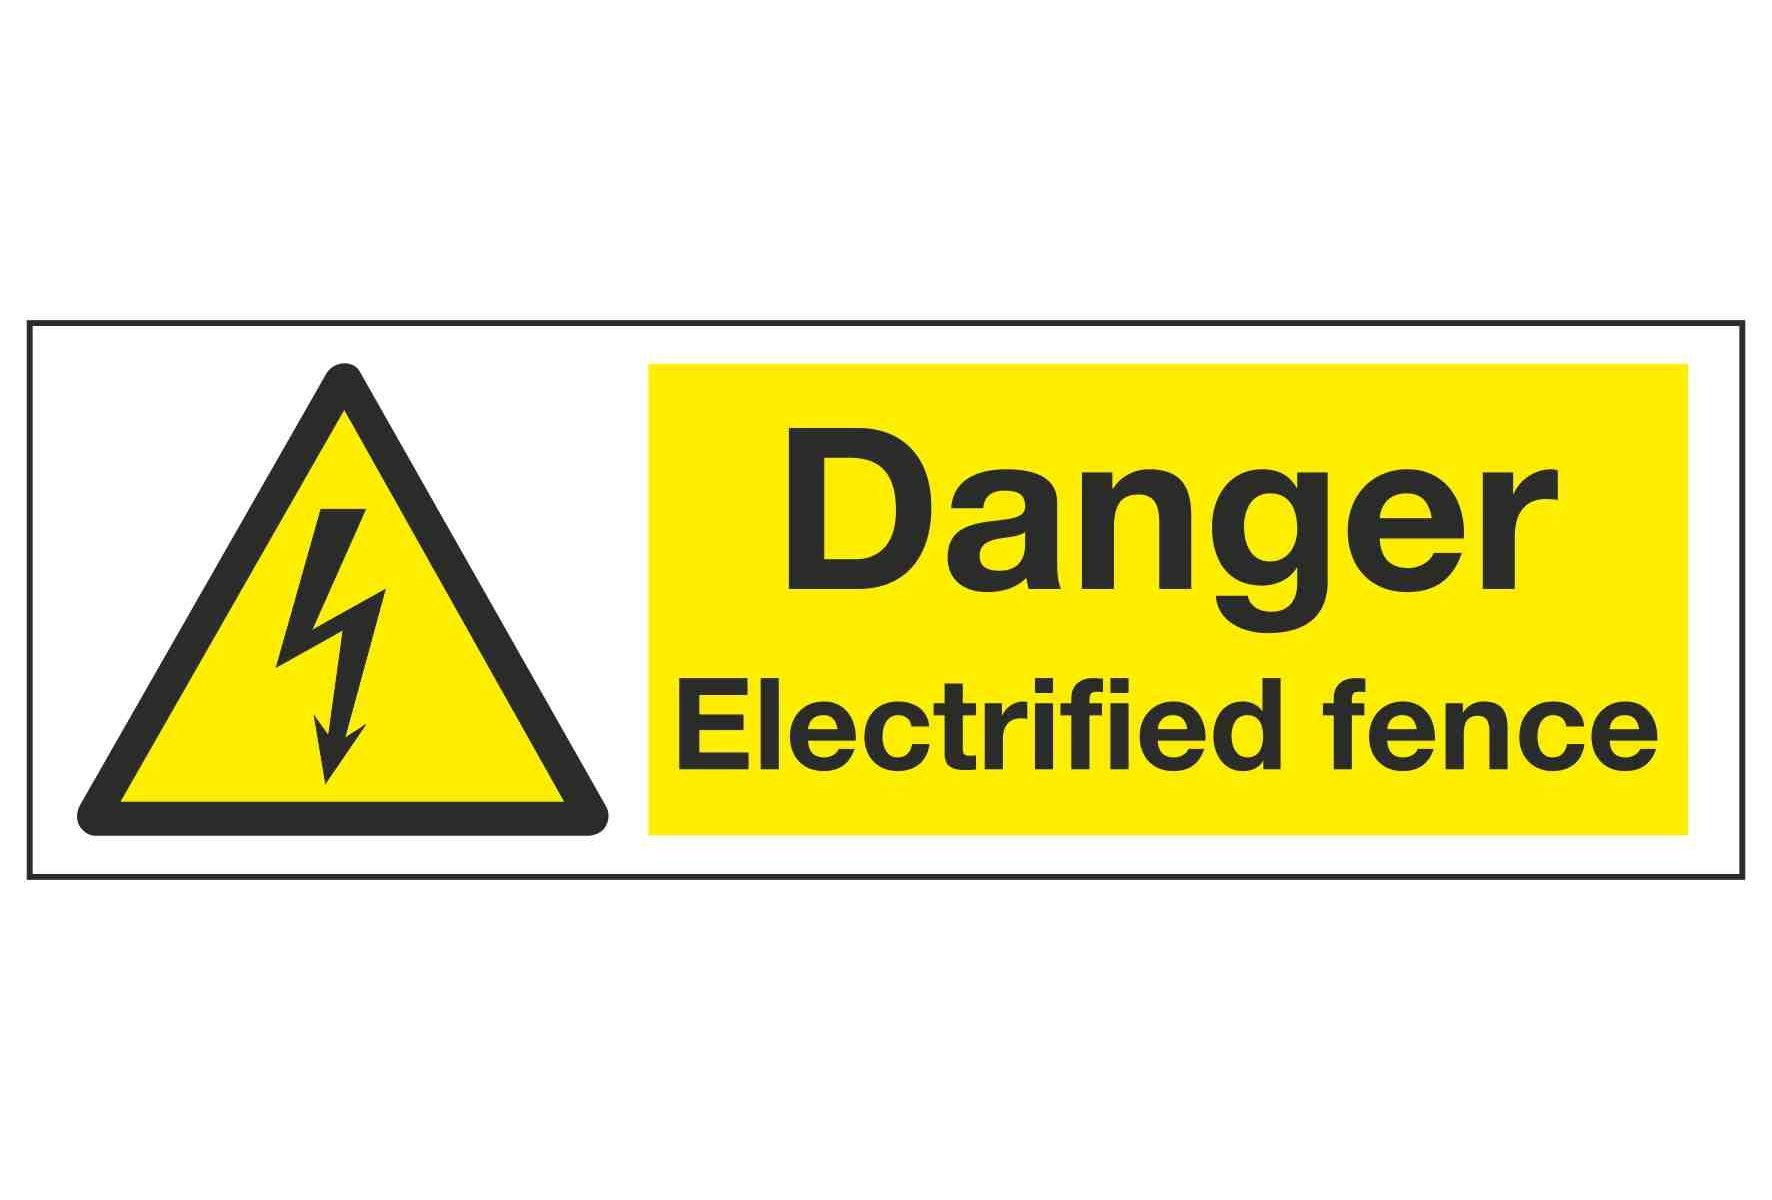 Danger Electrified fence